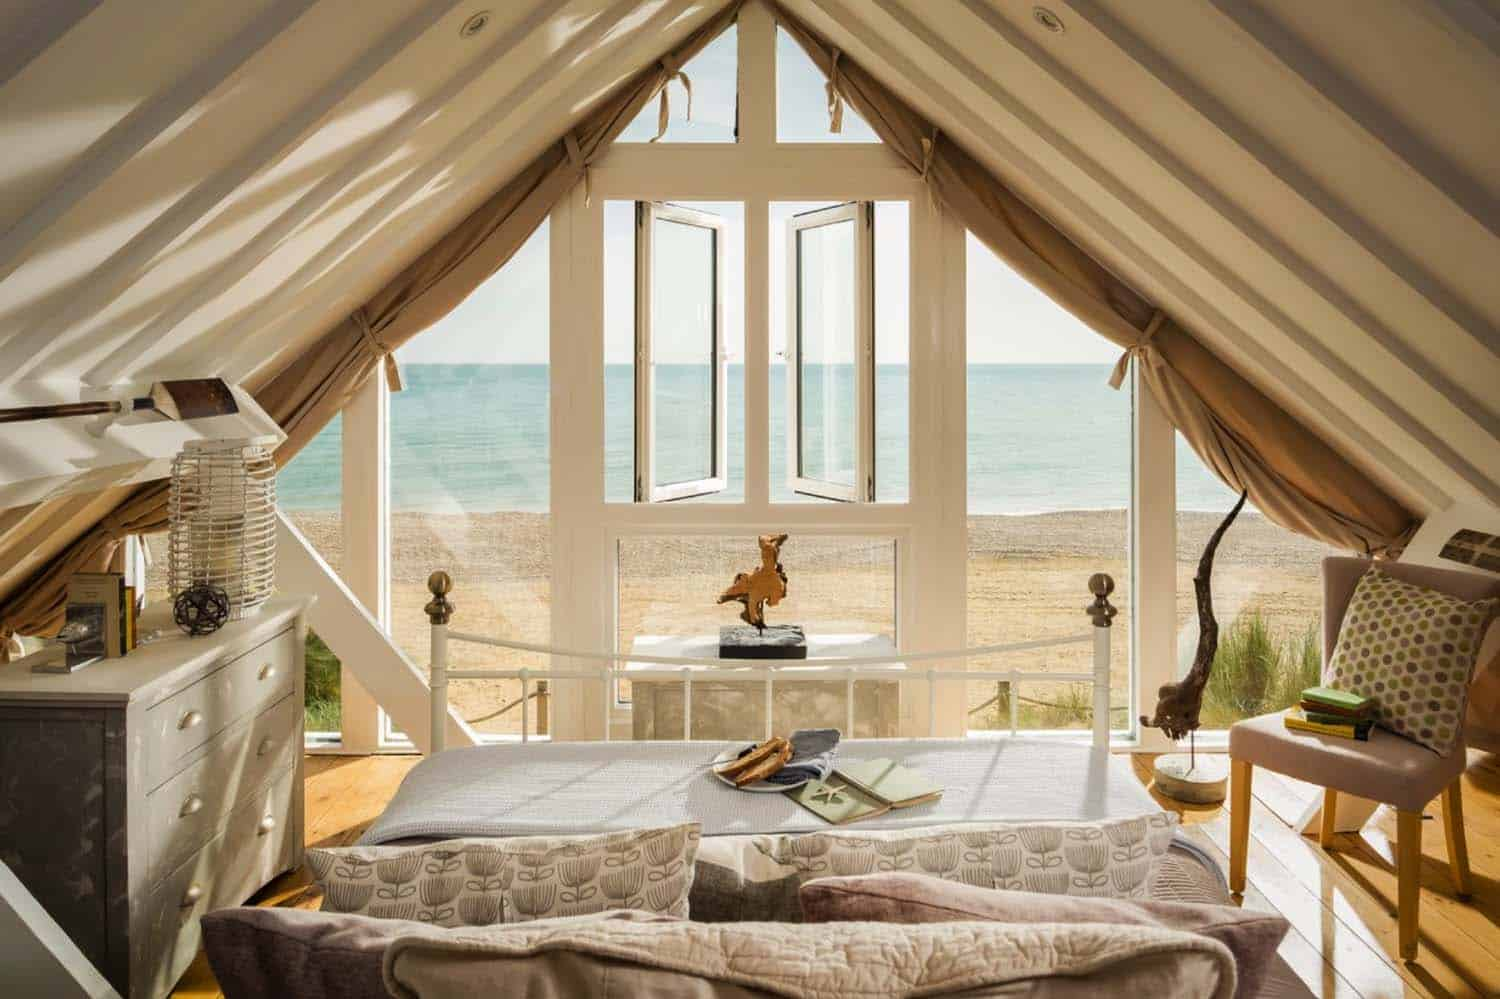 A perfect seaside holiday in East Sussex: Barefoot Beach House